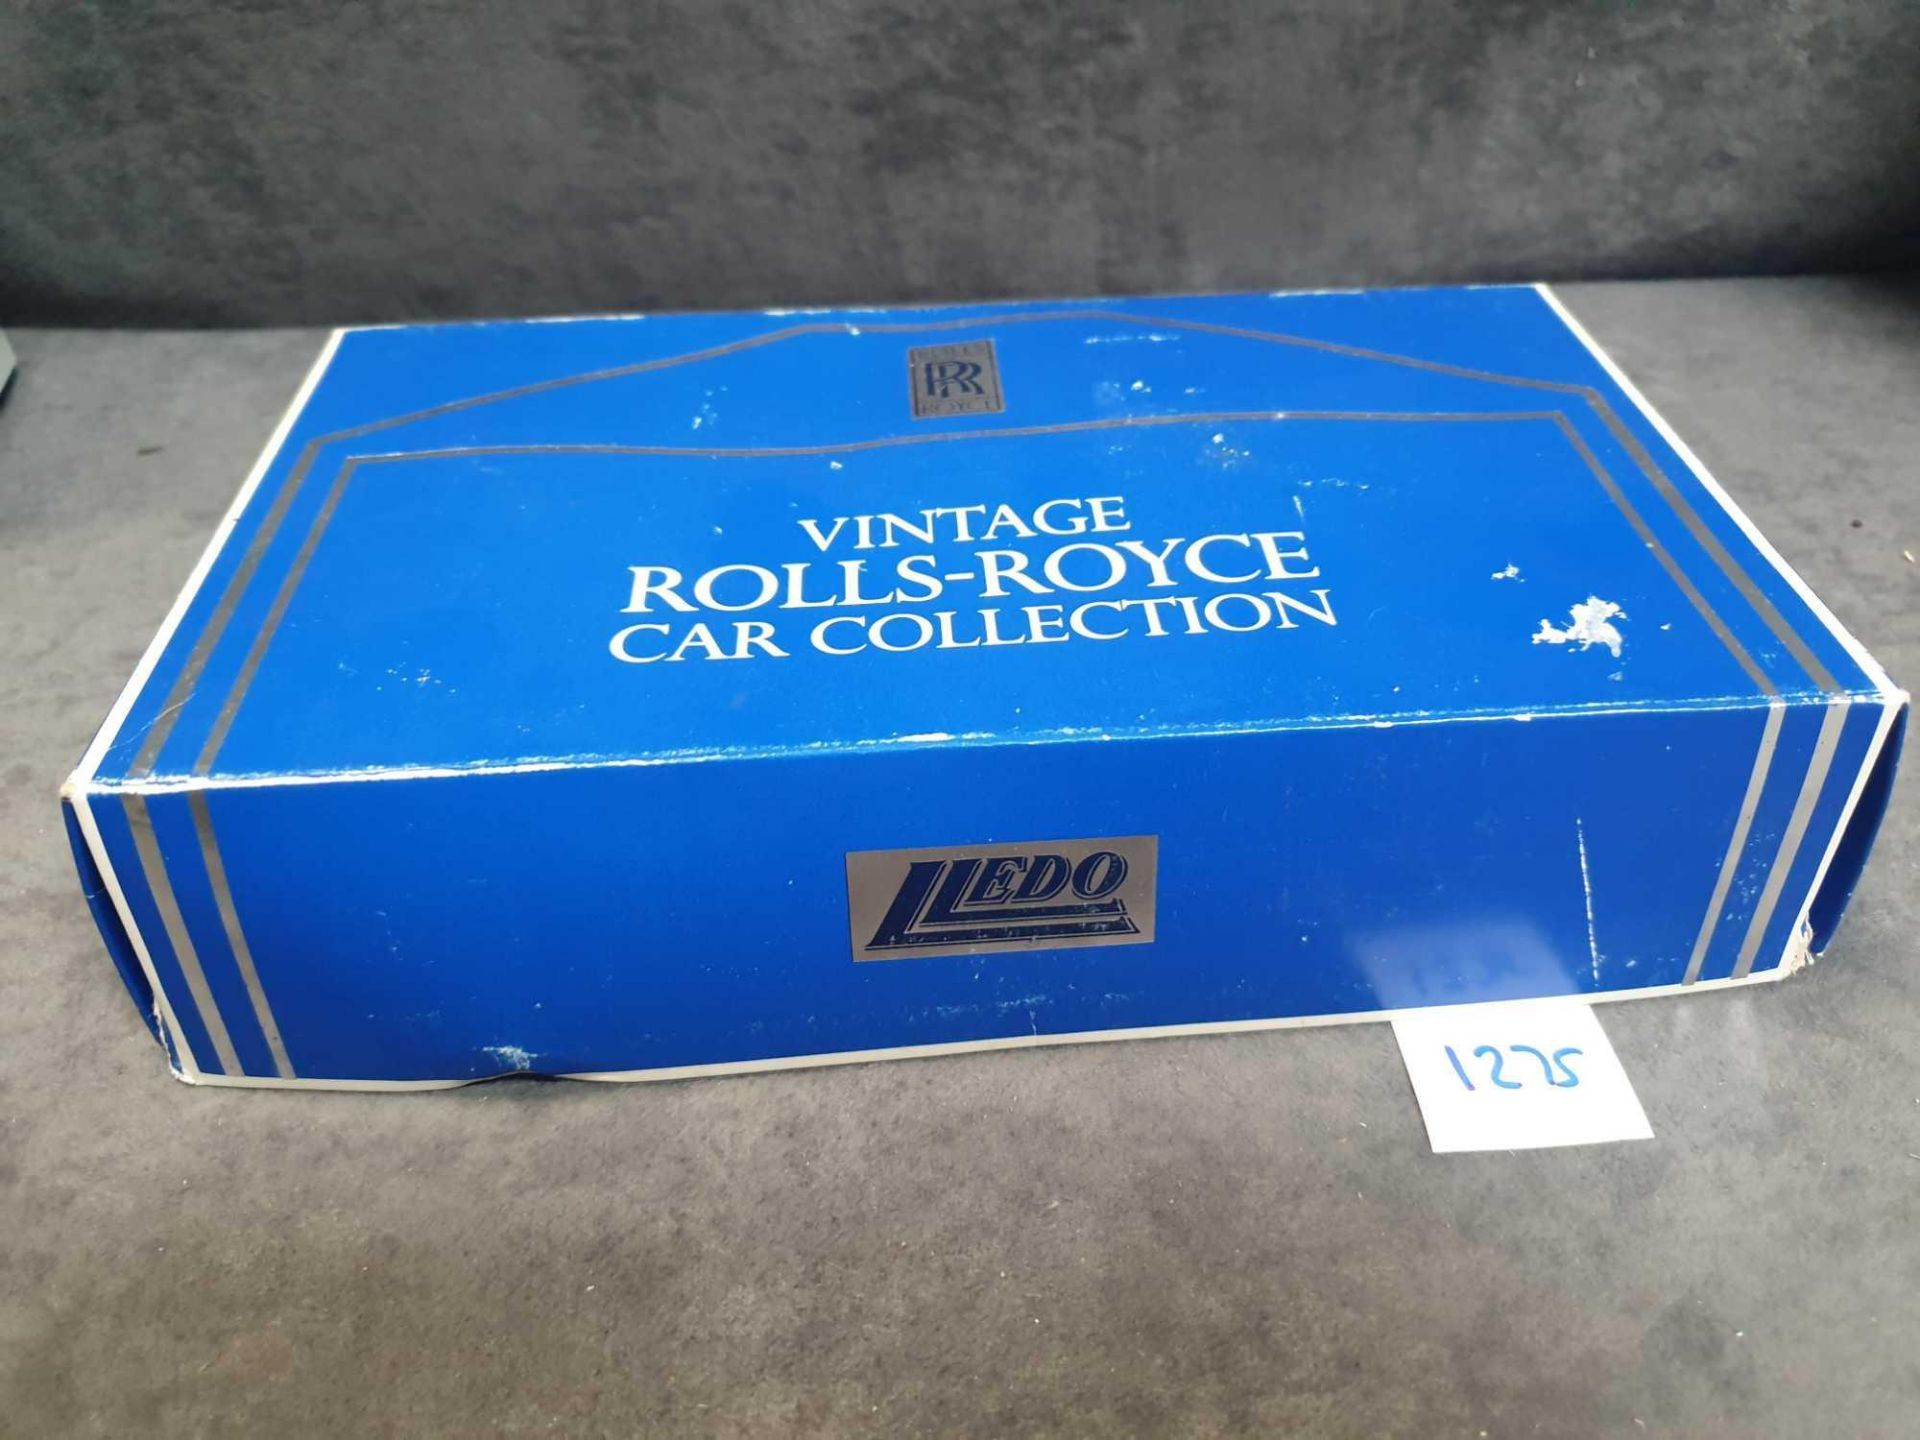 Lledo Vintage Rolls Royce Collection 3 Cars On Wooden Display Plinth Mint Model - Image 4 of 4